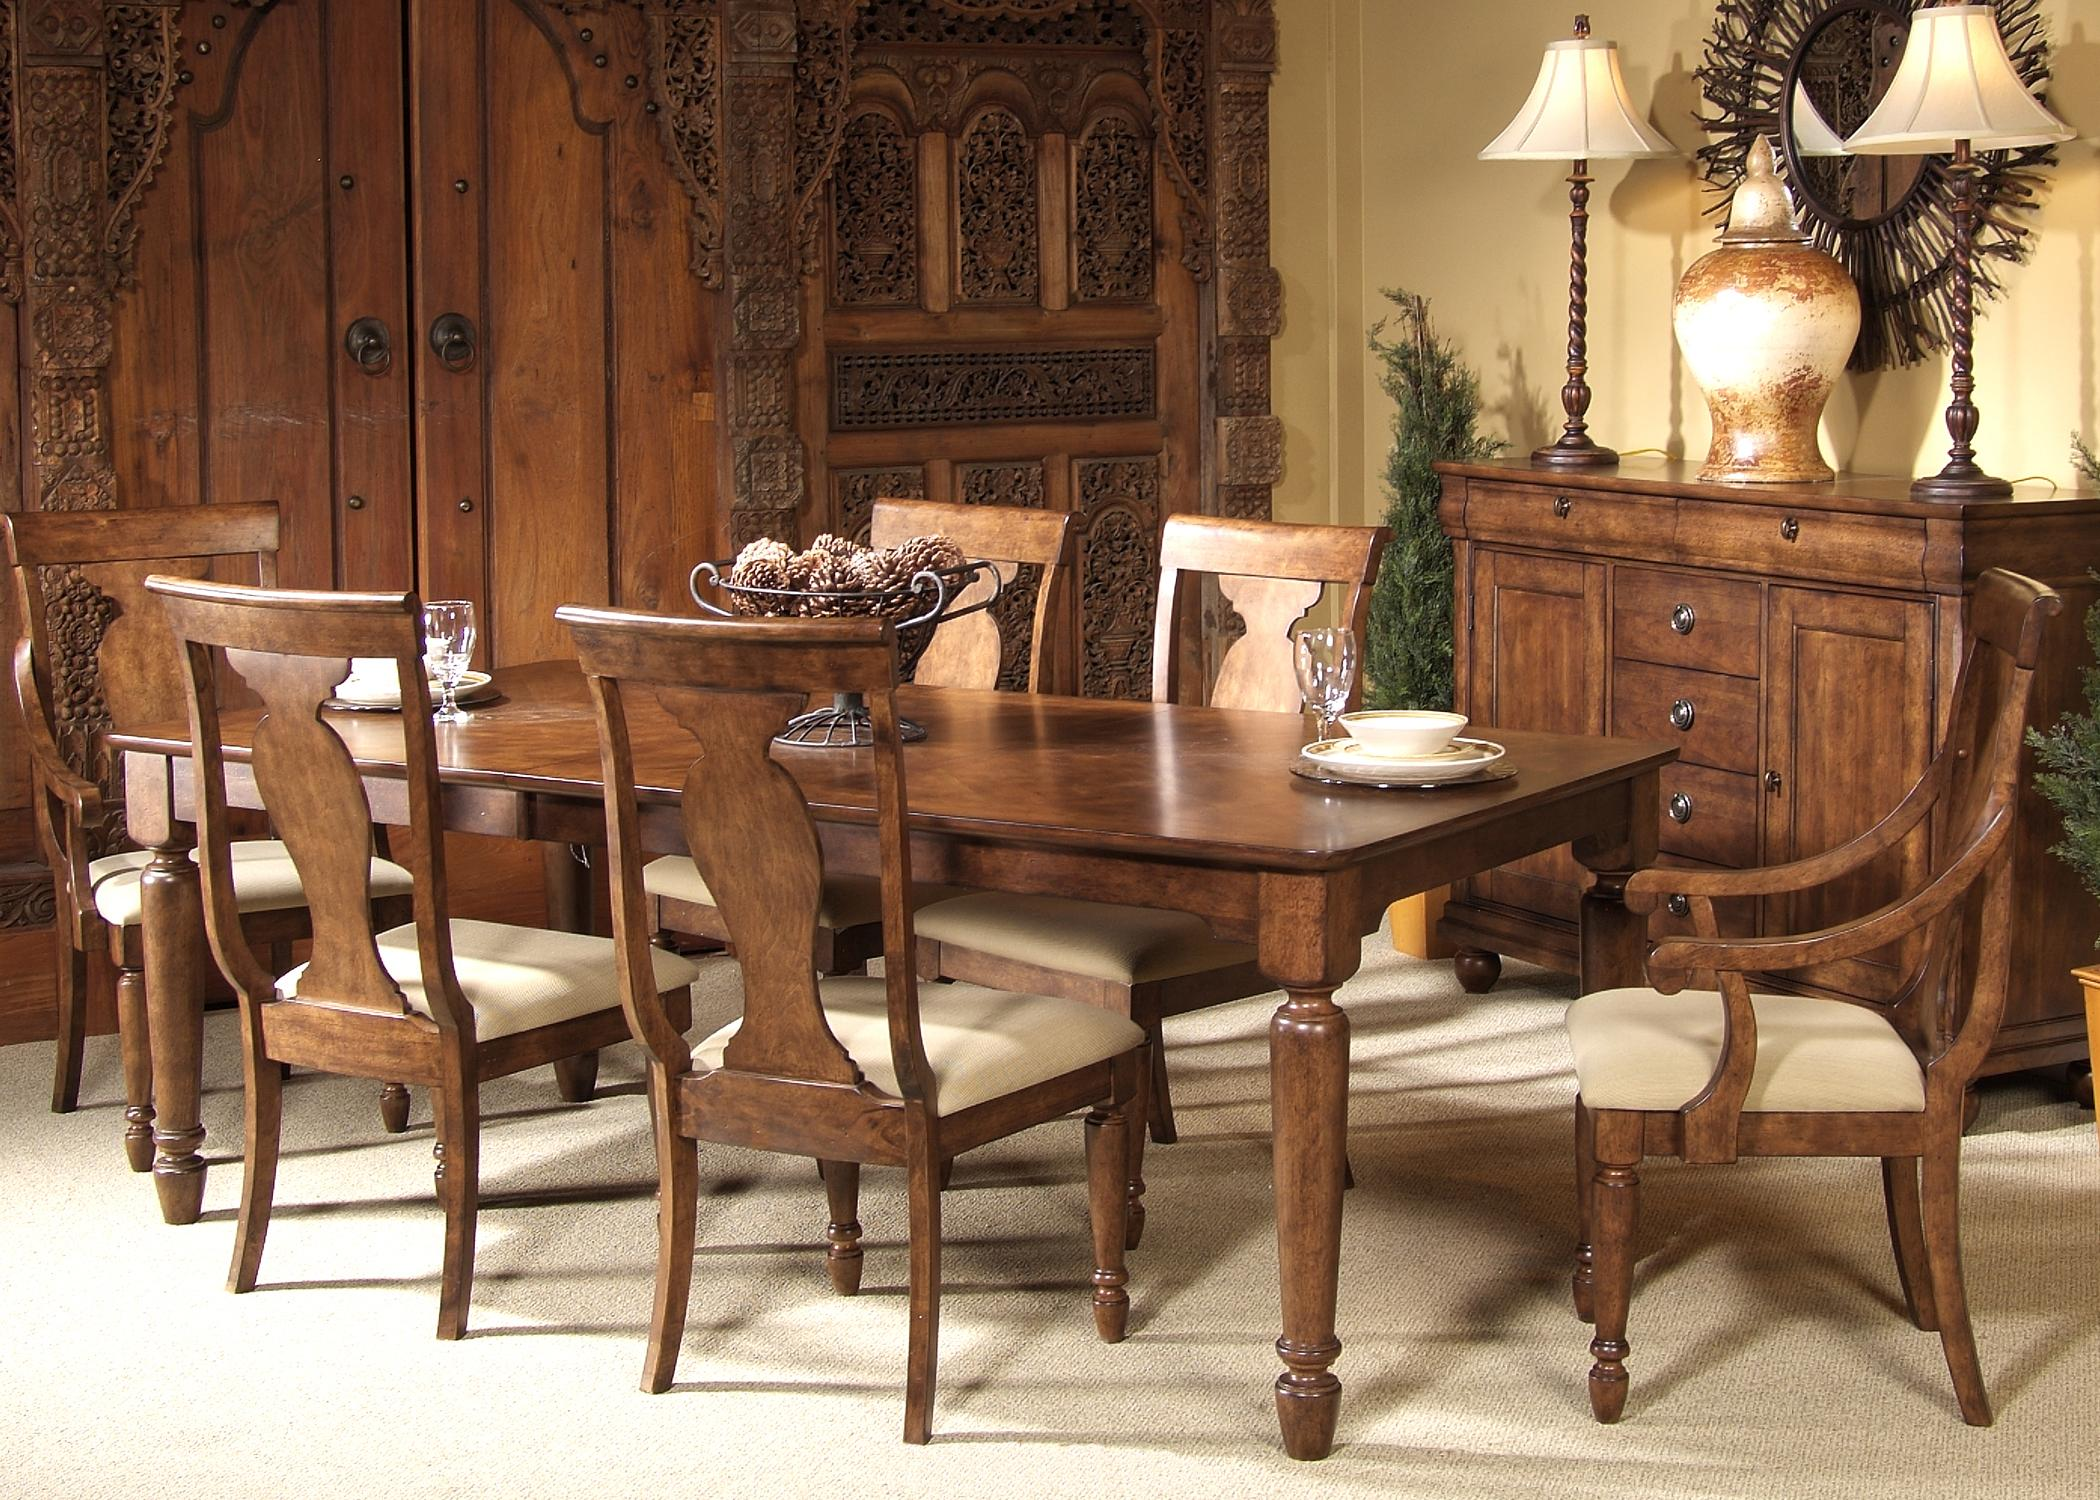 Rustic Traditions 7-Piece Rectangular Table Set by Liberty Furniture at Lapeer Furniture & Mattress Center